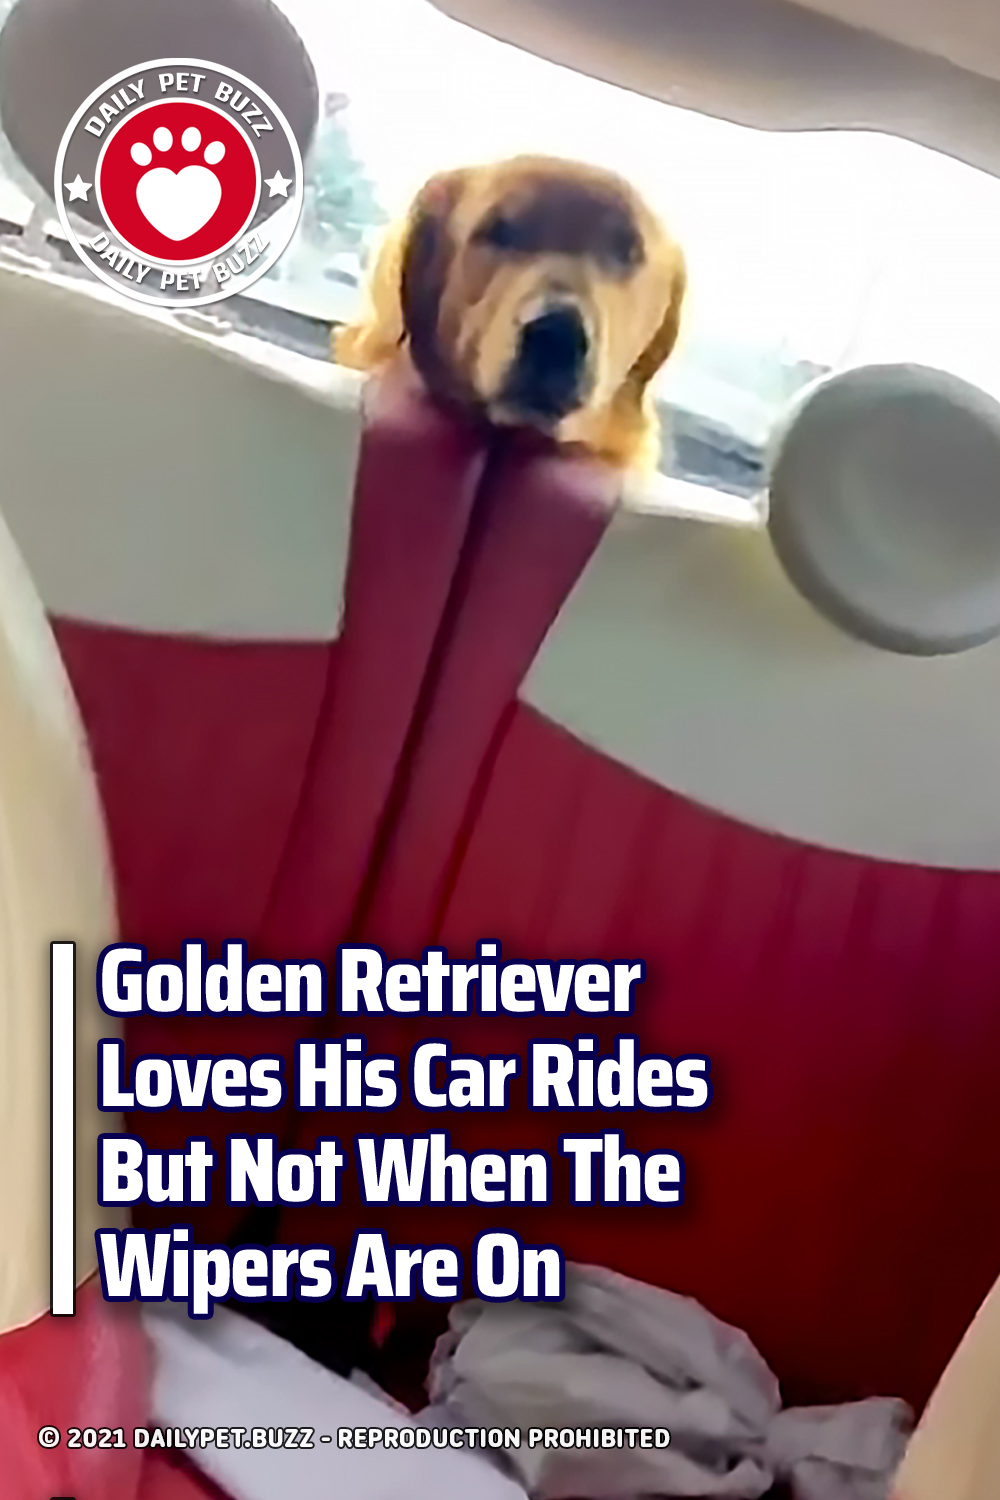 Golden Retriever Loves His Car Rides But Not When The Wipers Are On